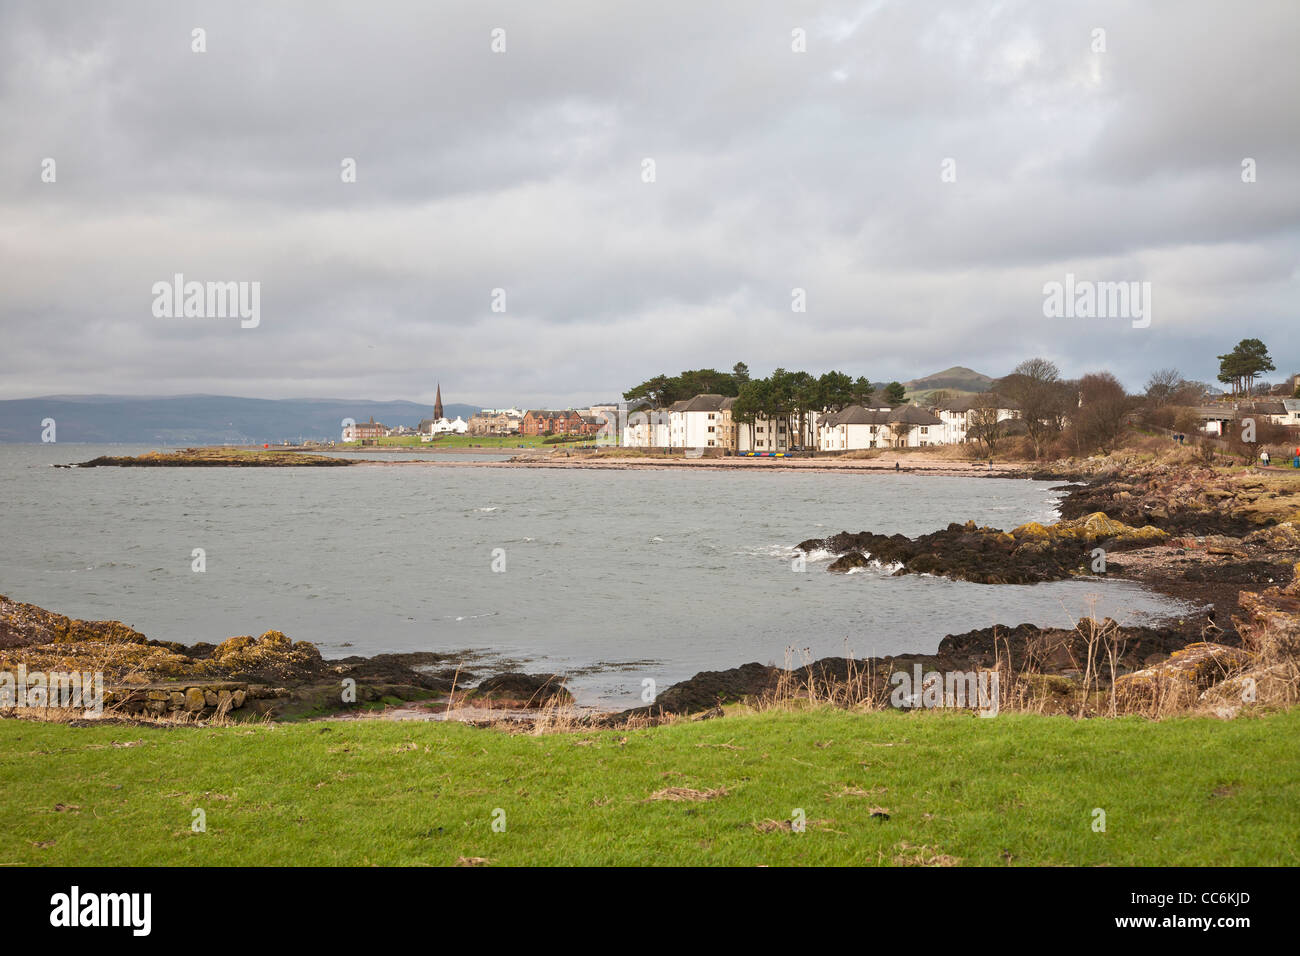 Largs, Firth of Clyde, Ayrshire - Stock Image